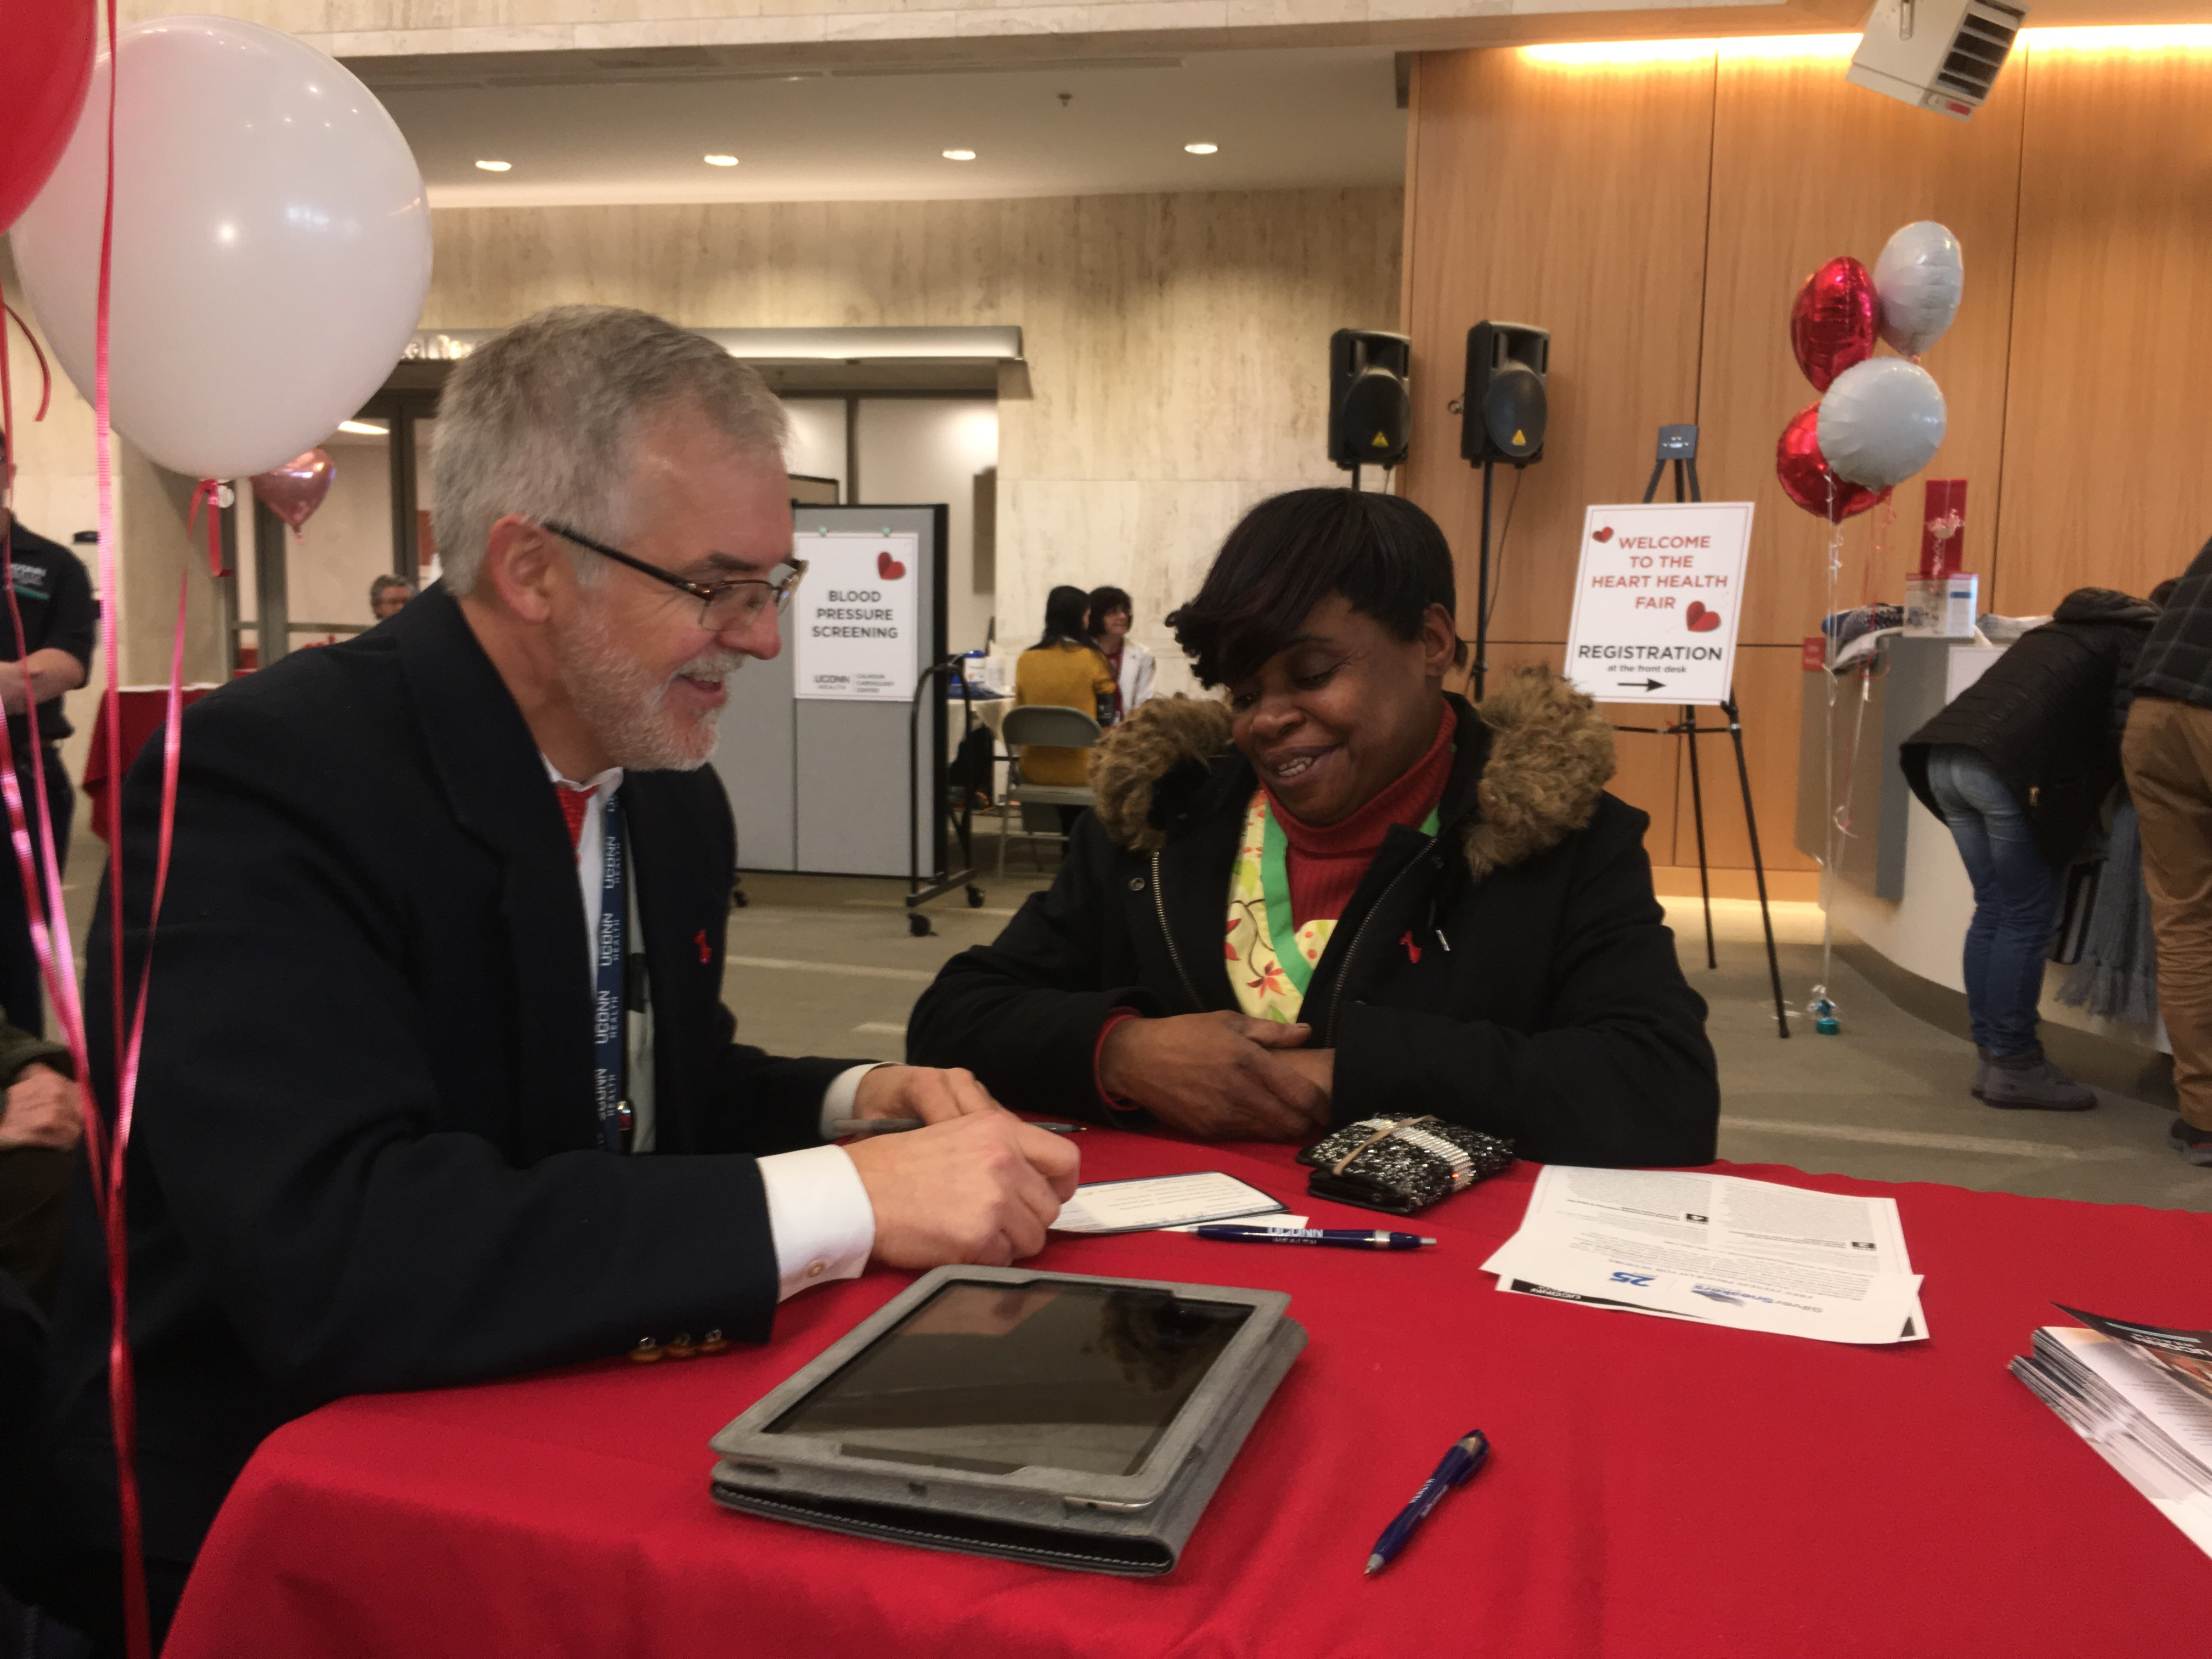 Chir-lane Johnson of New Britain gets the results of her free screenings and a personalized heart health assessment at UConn Health's Heart Health Fair on National Wear Red Day on Feb. 2 (UConn Health Photo/Lauren Woods).